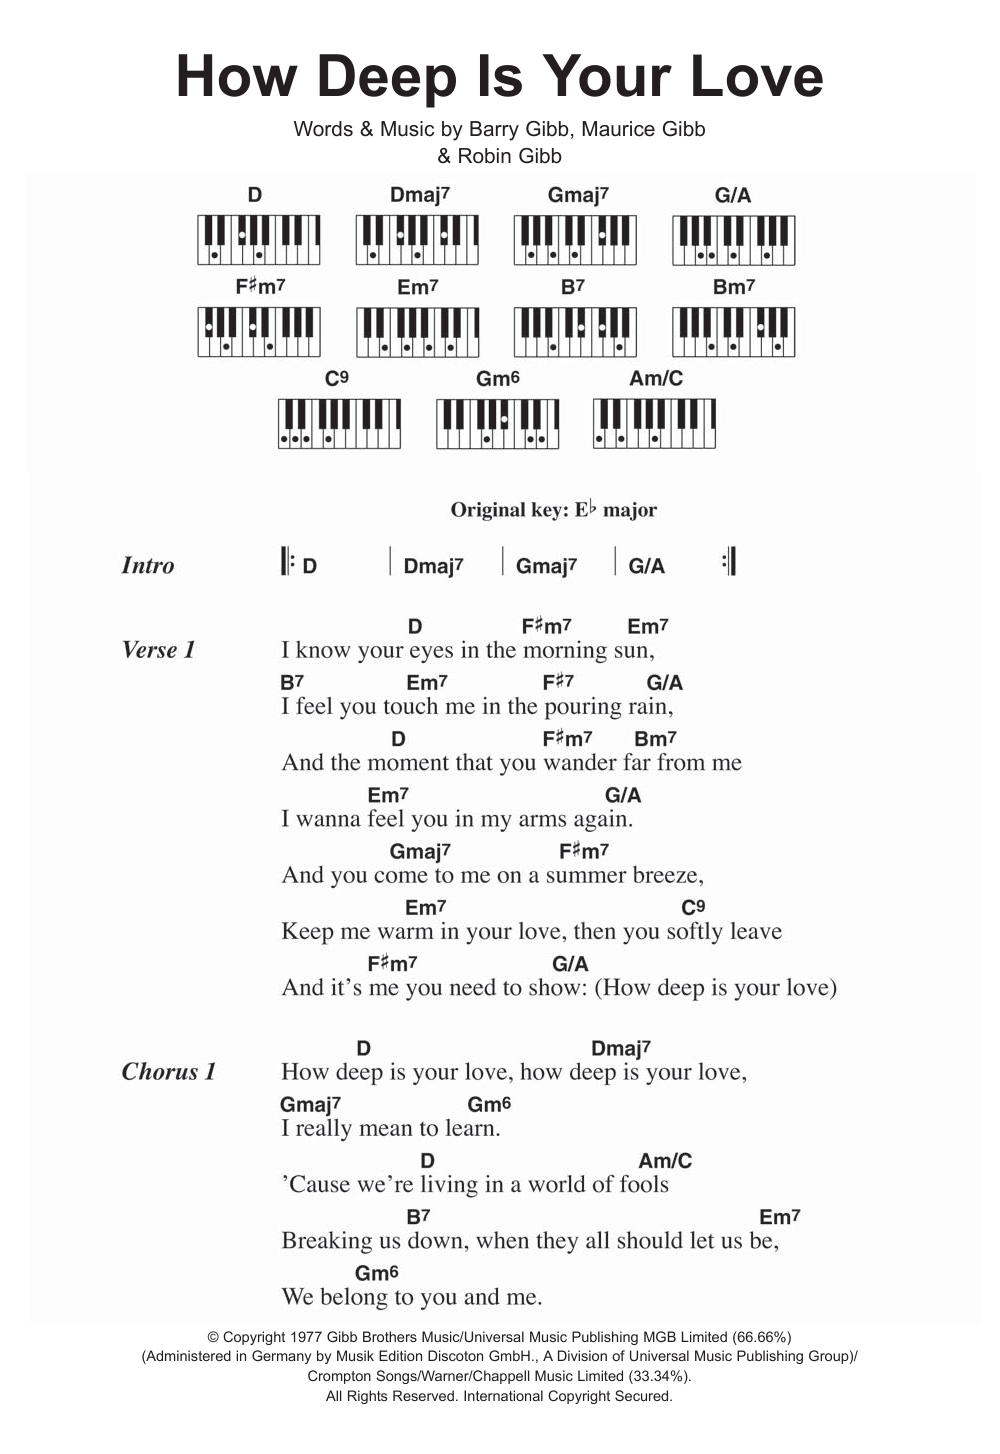 How Deep Is Your Love | Sheet Music Direct